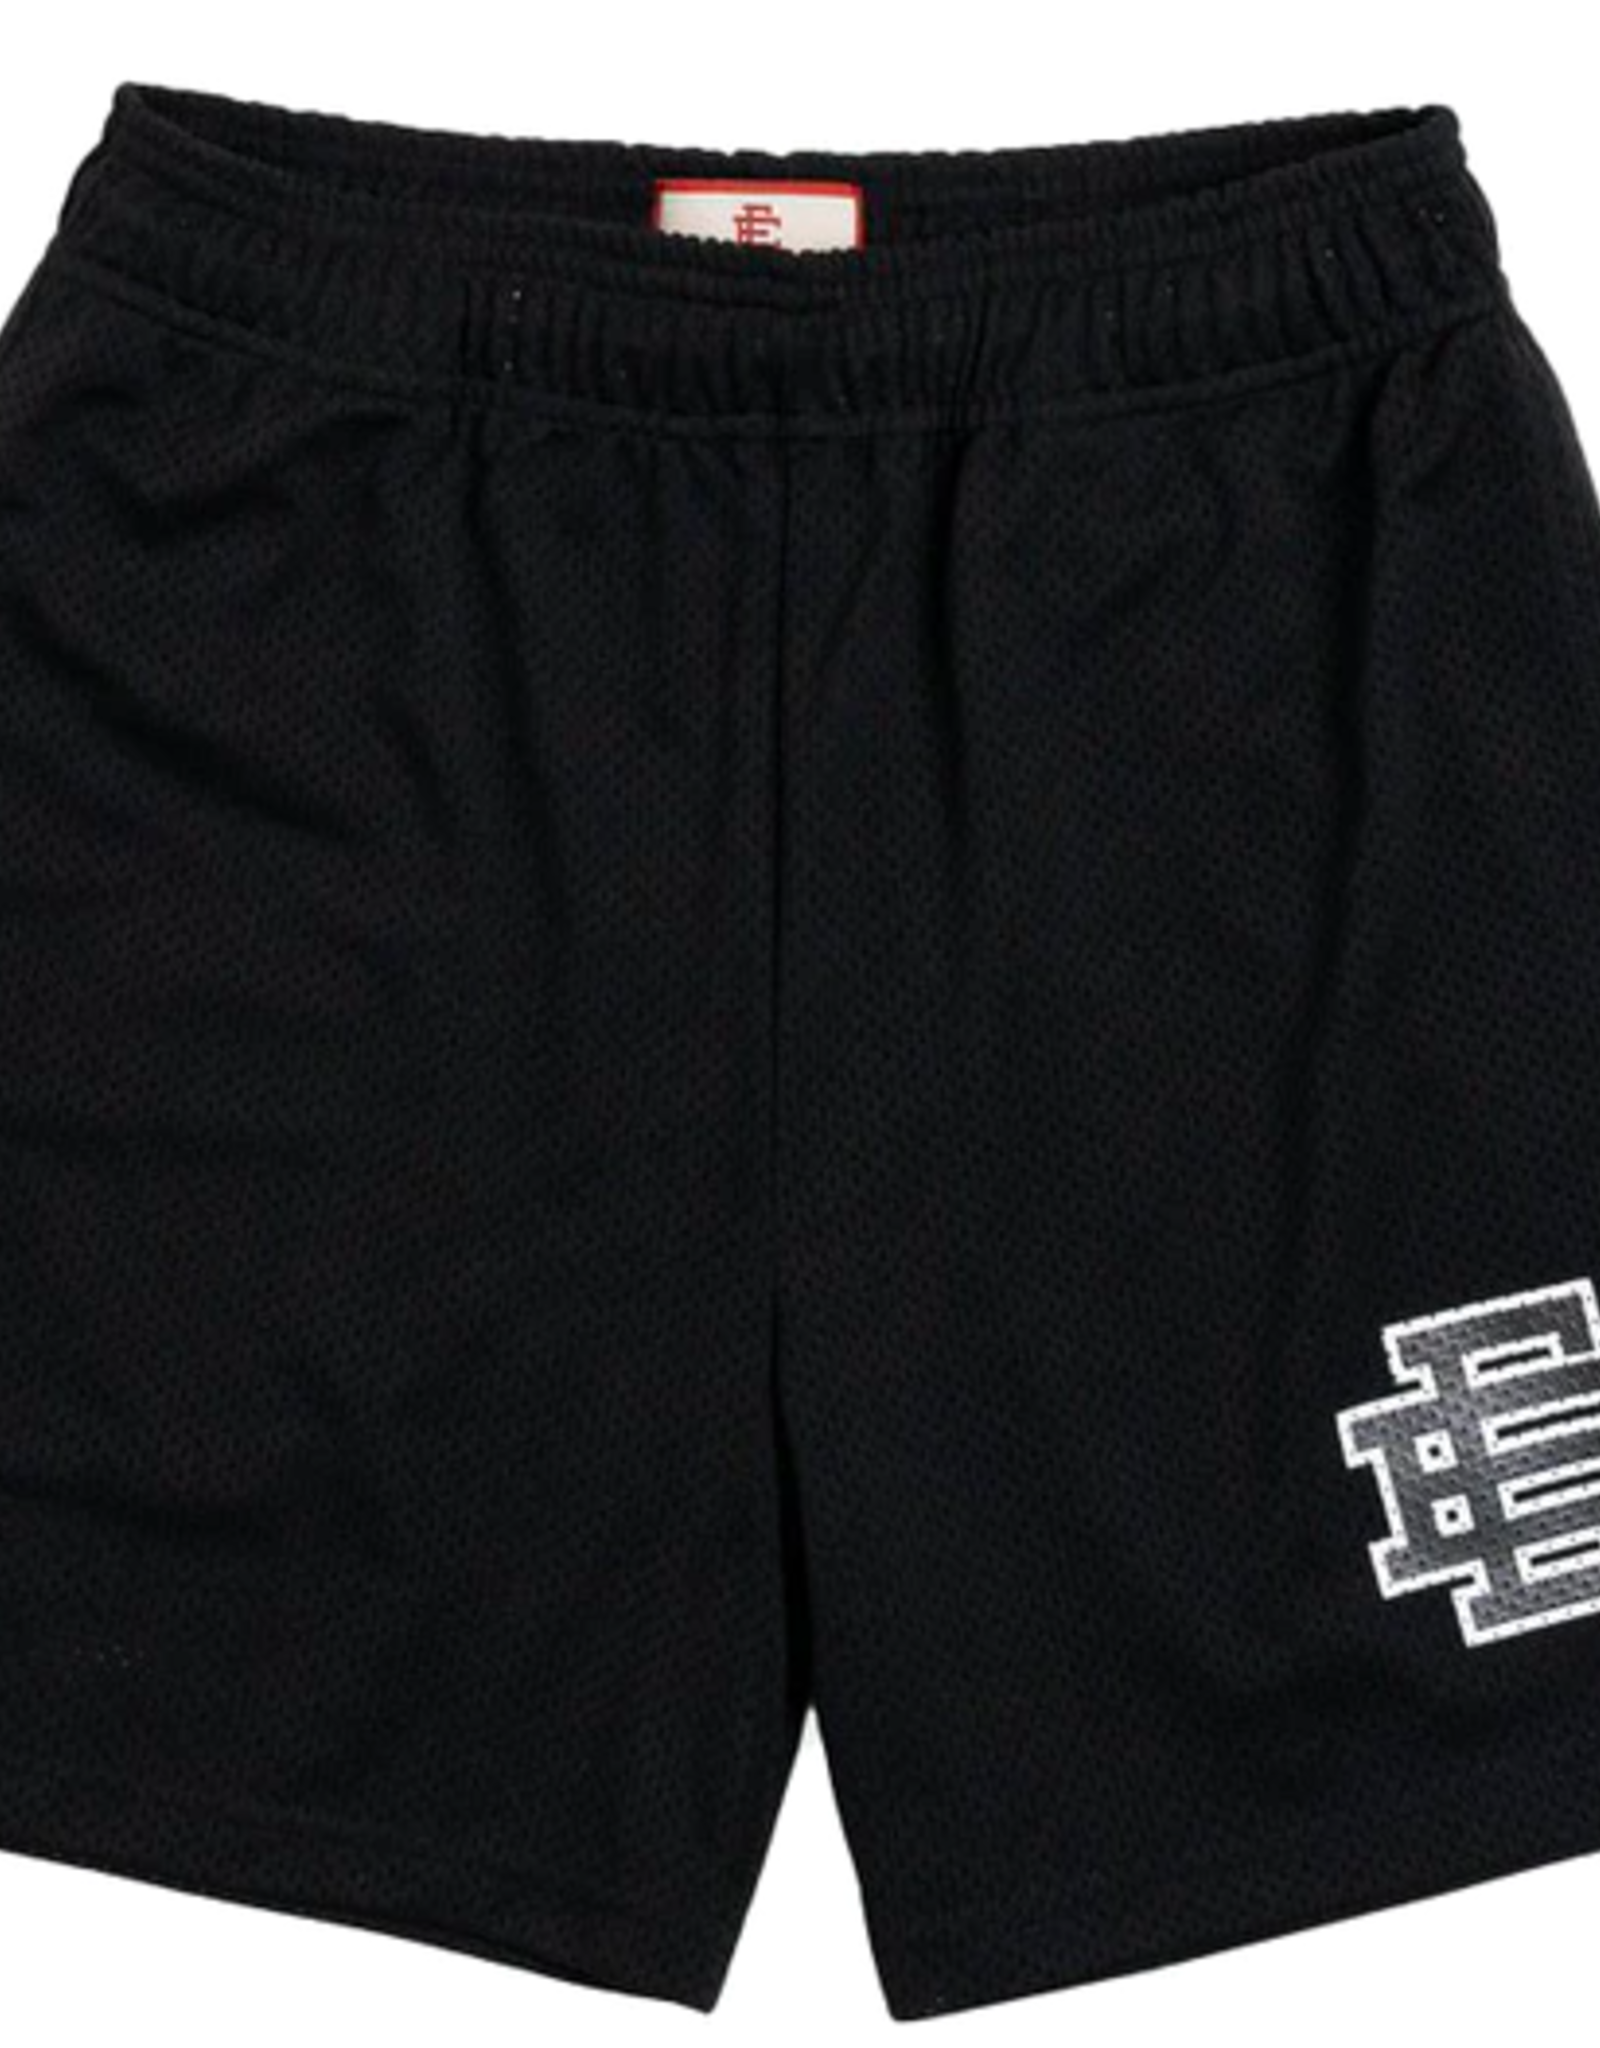 ERIC EMANUEL Eric Emanuel EE Basic Short Black/White/Metallic Black - Large